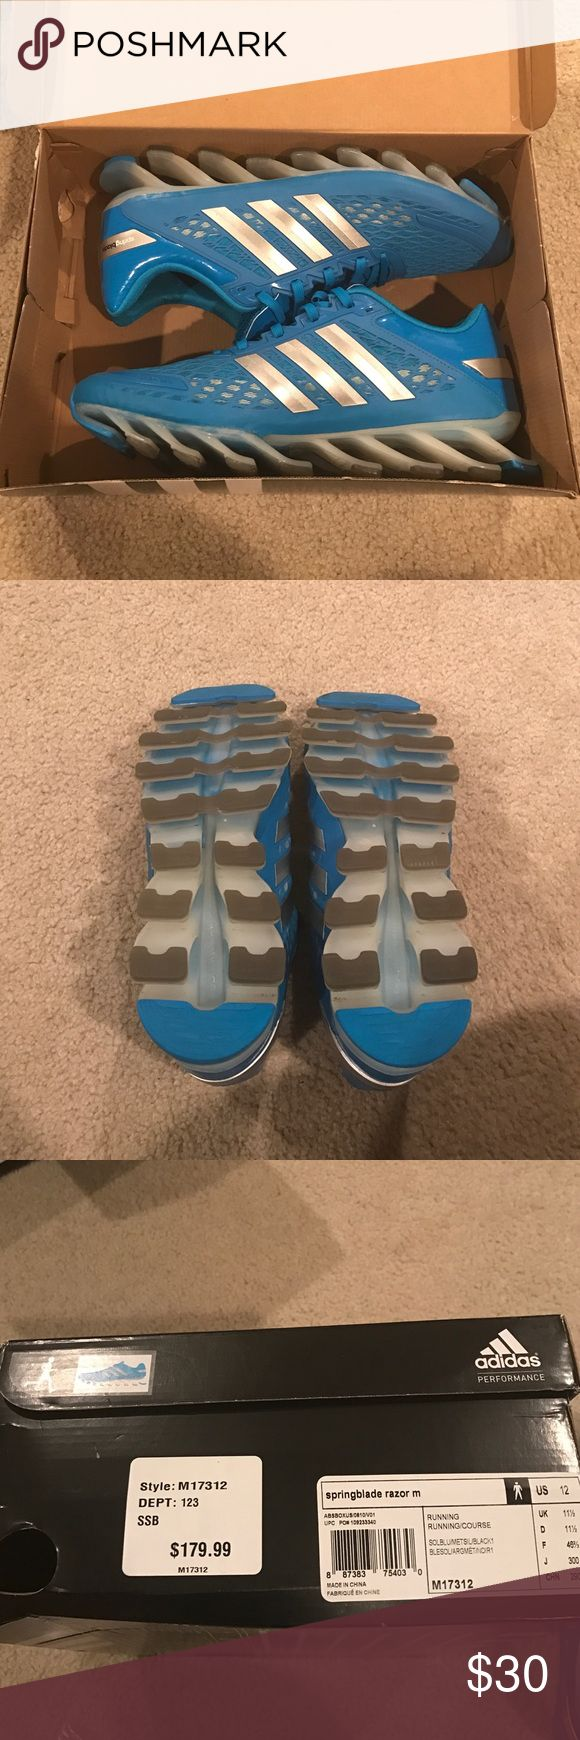 Adidas Springblade Razor Worn once, very comfy. Adidas Shoes Sneakers